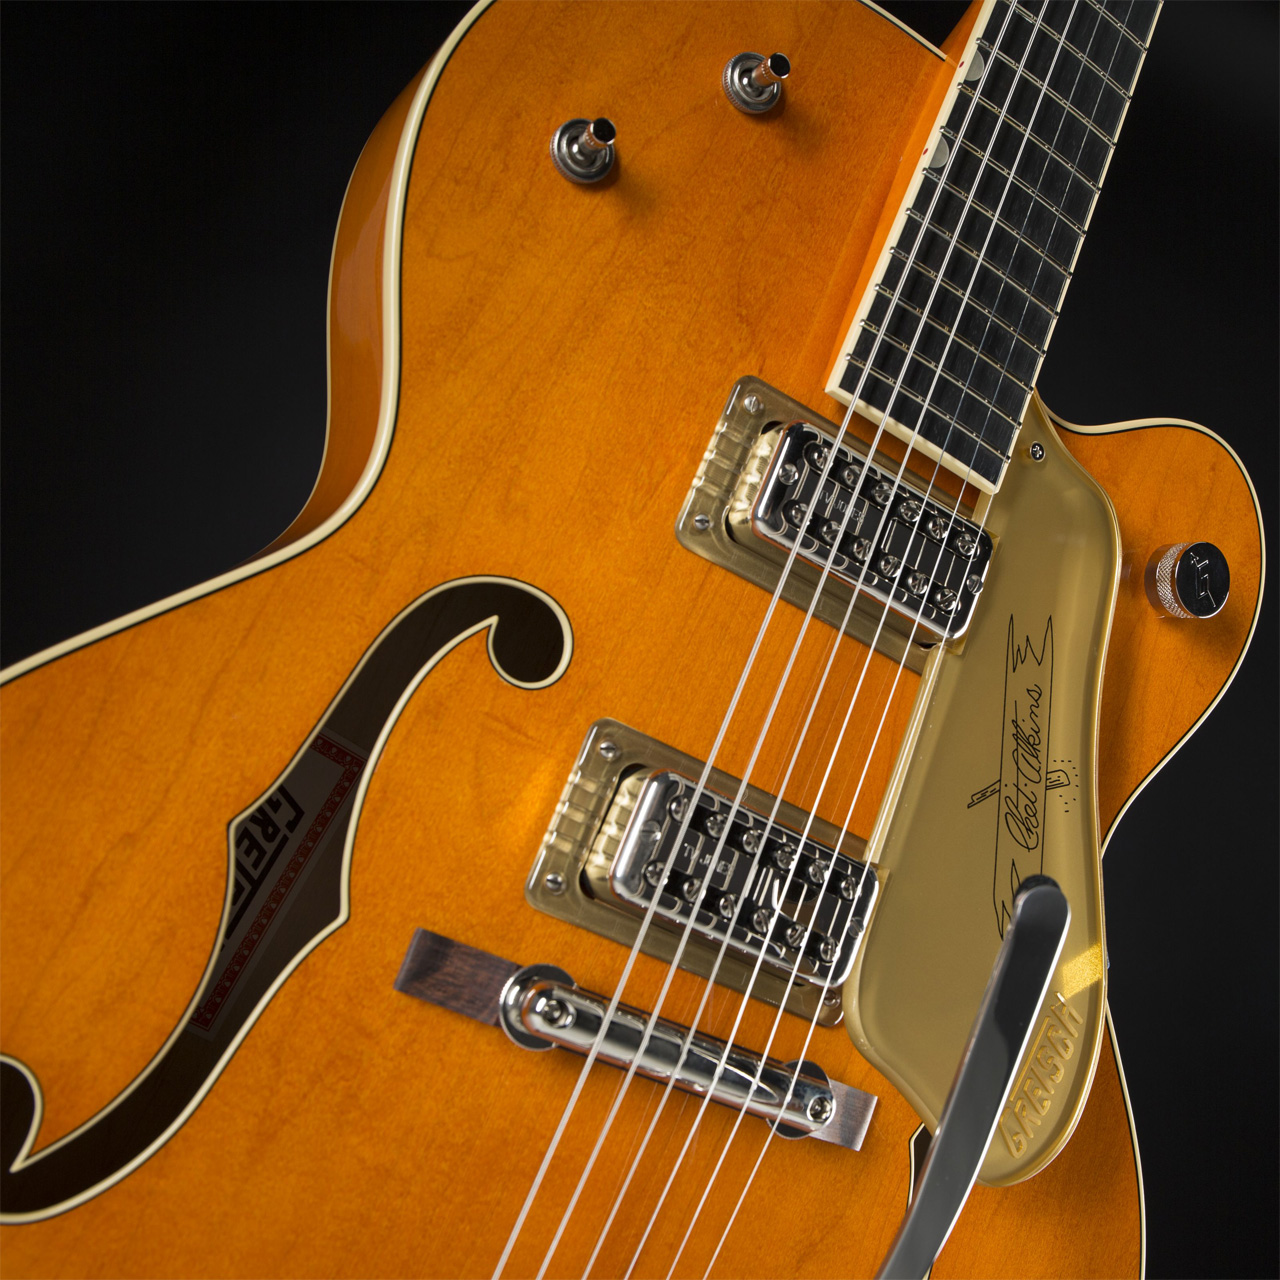 GRETSCH G6120T-59 Vintage Select Edition Chet Atkins Hollow Body Bigsby Vintage Orange Stain Lacquer Pickups